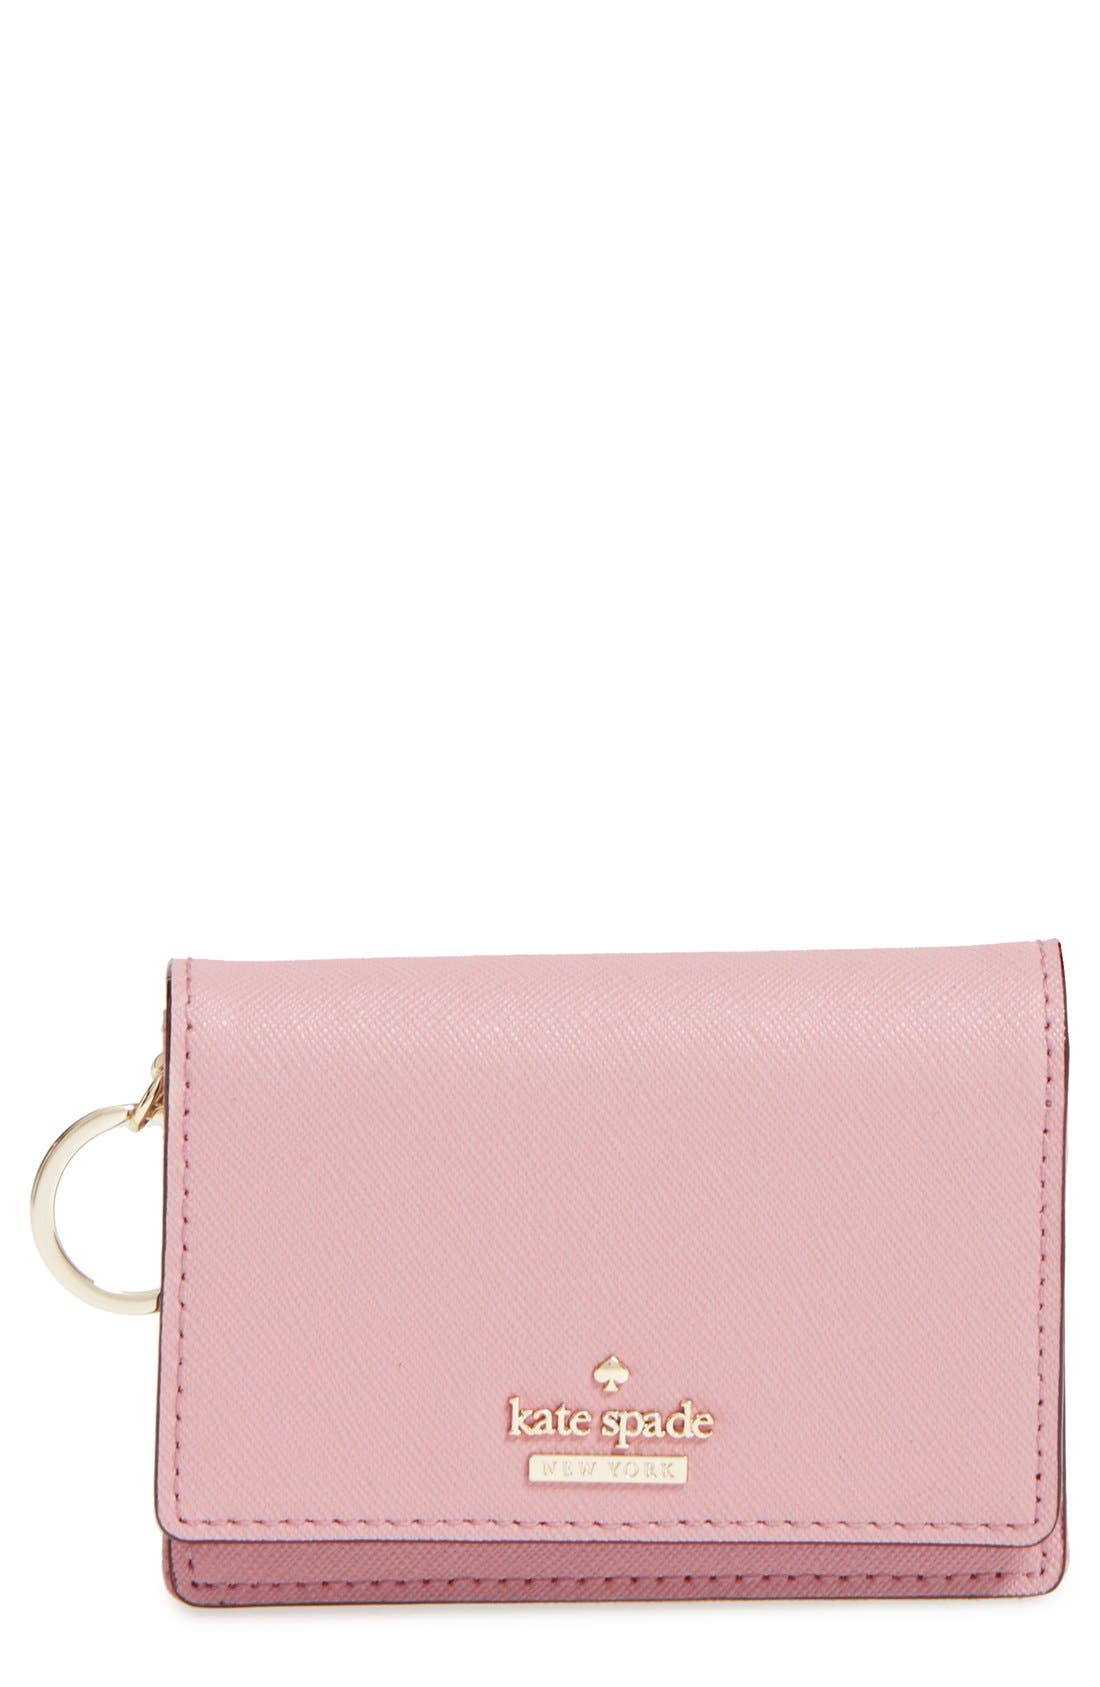 Alternate Image 1 Selected - kate spade new york 'cameron street - beca' textured leather wallet